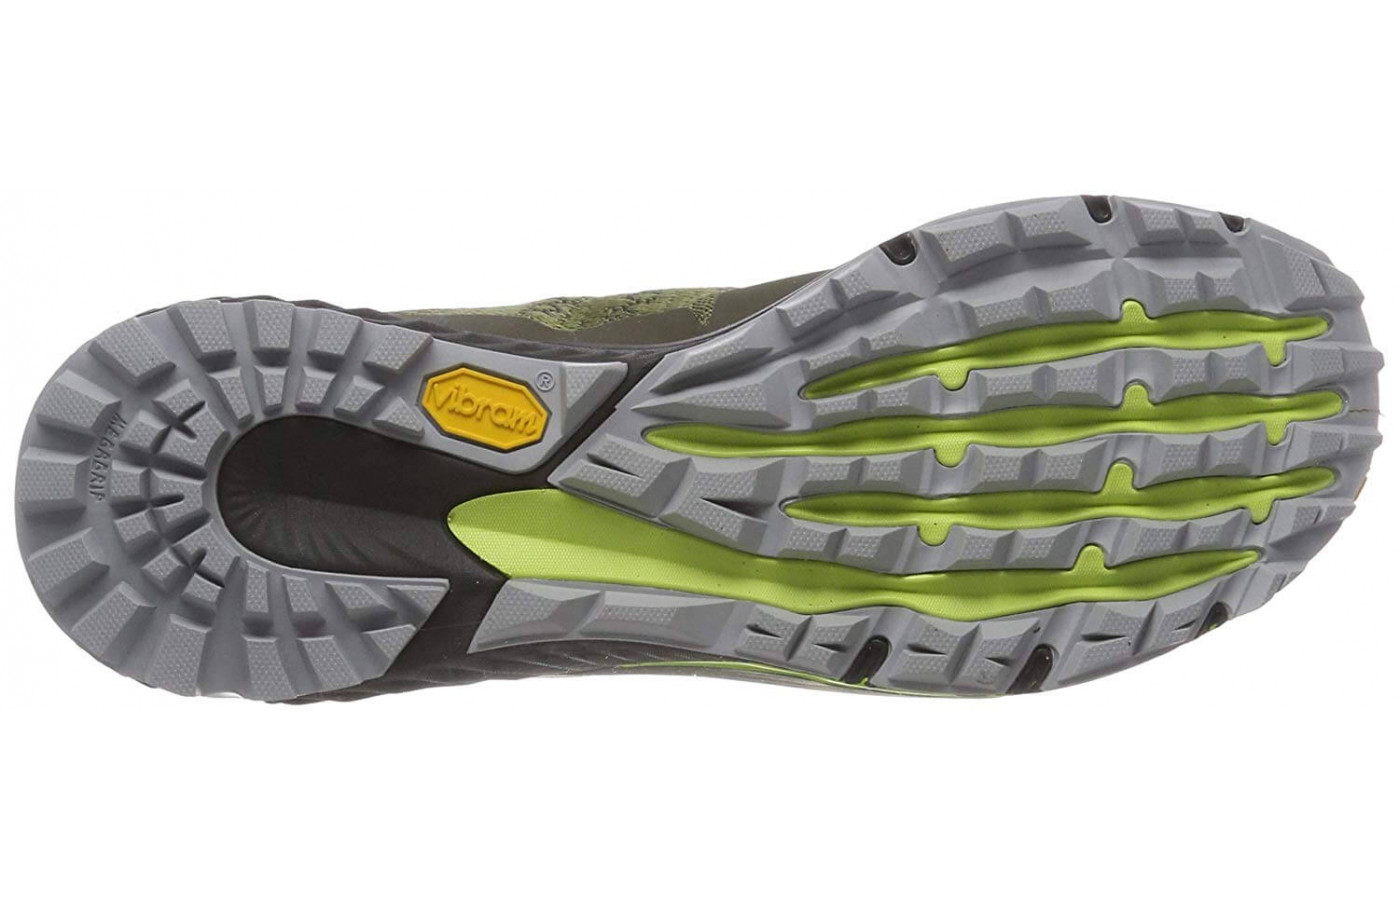 The Agility Peak Flex 3 features a Vibram Megagrip outsol